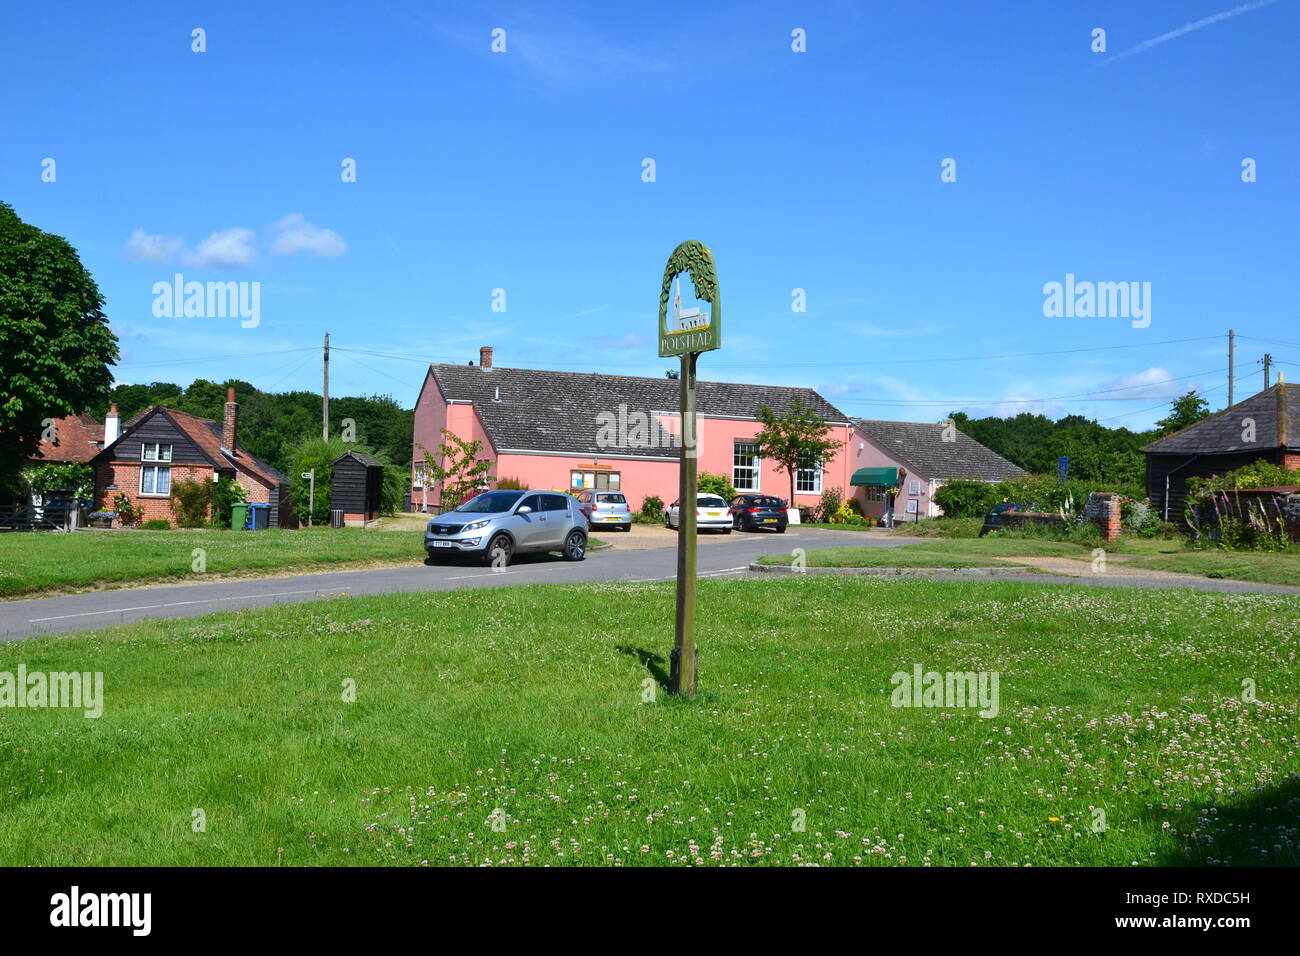 Village Green, Polstead, Suffolk, UK - Stock Image